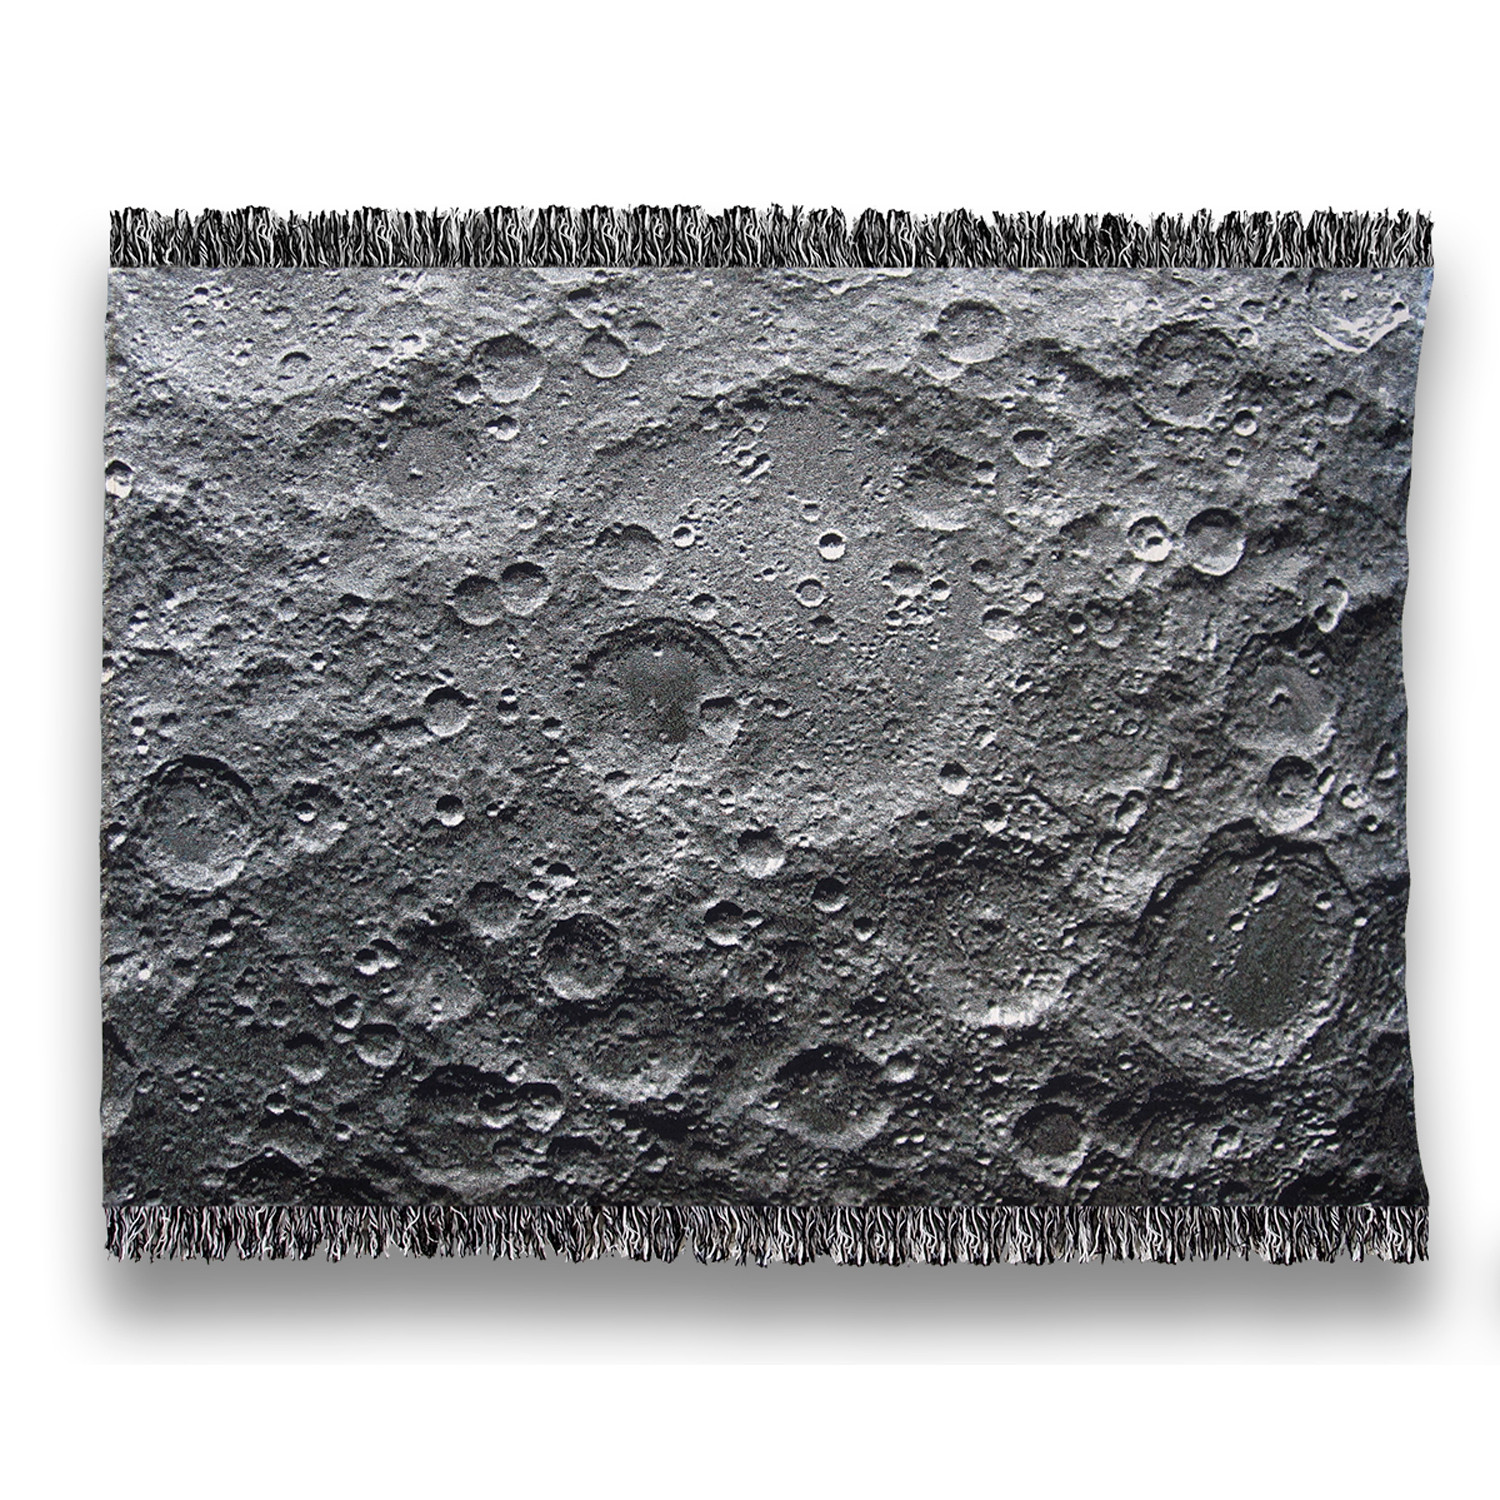 Moonscape 2 throw 50 l x 1 w x 60 h dqtrs touch of for What is touchofmodern